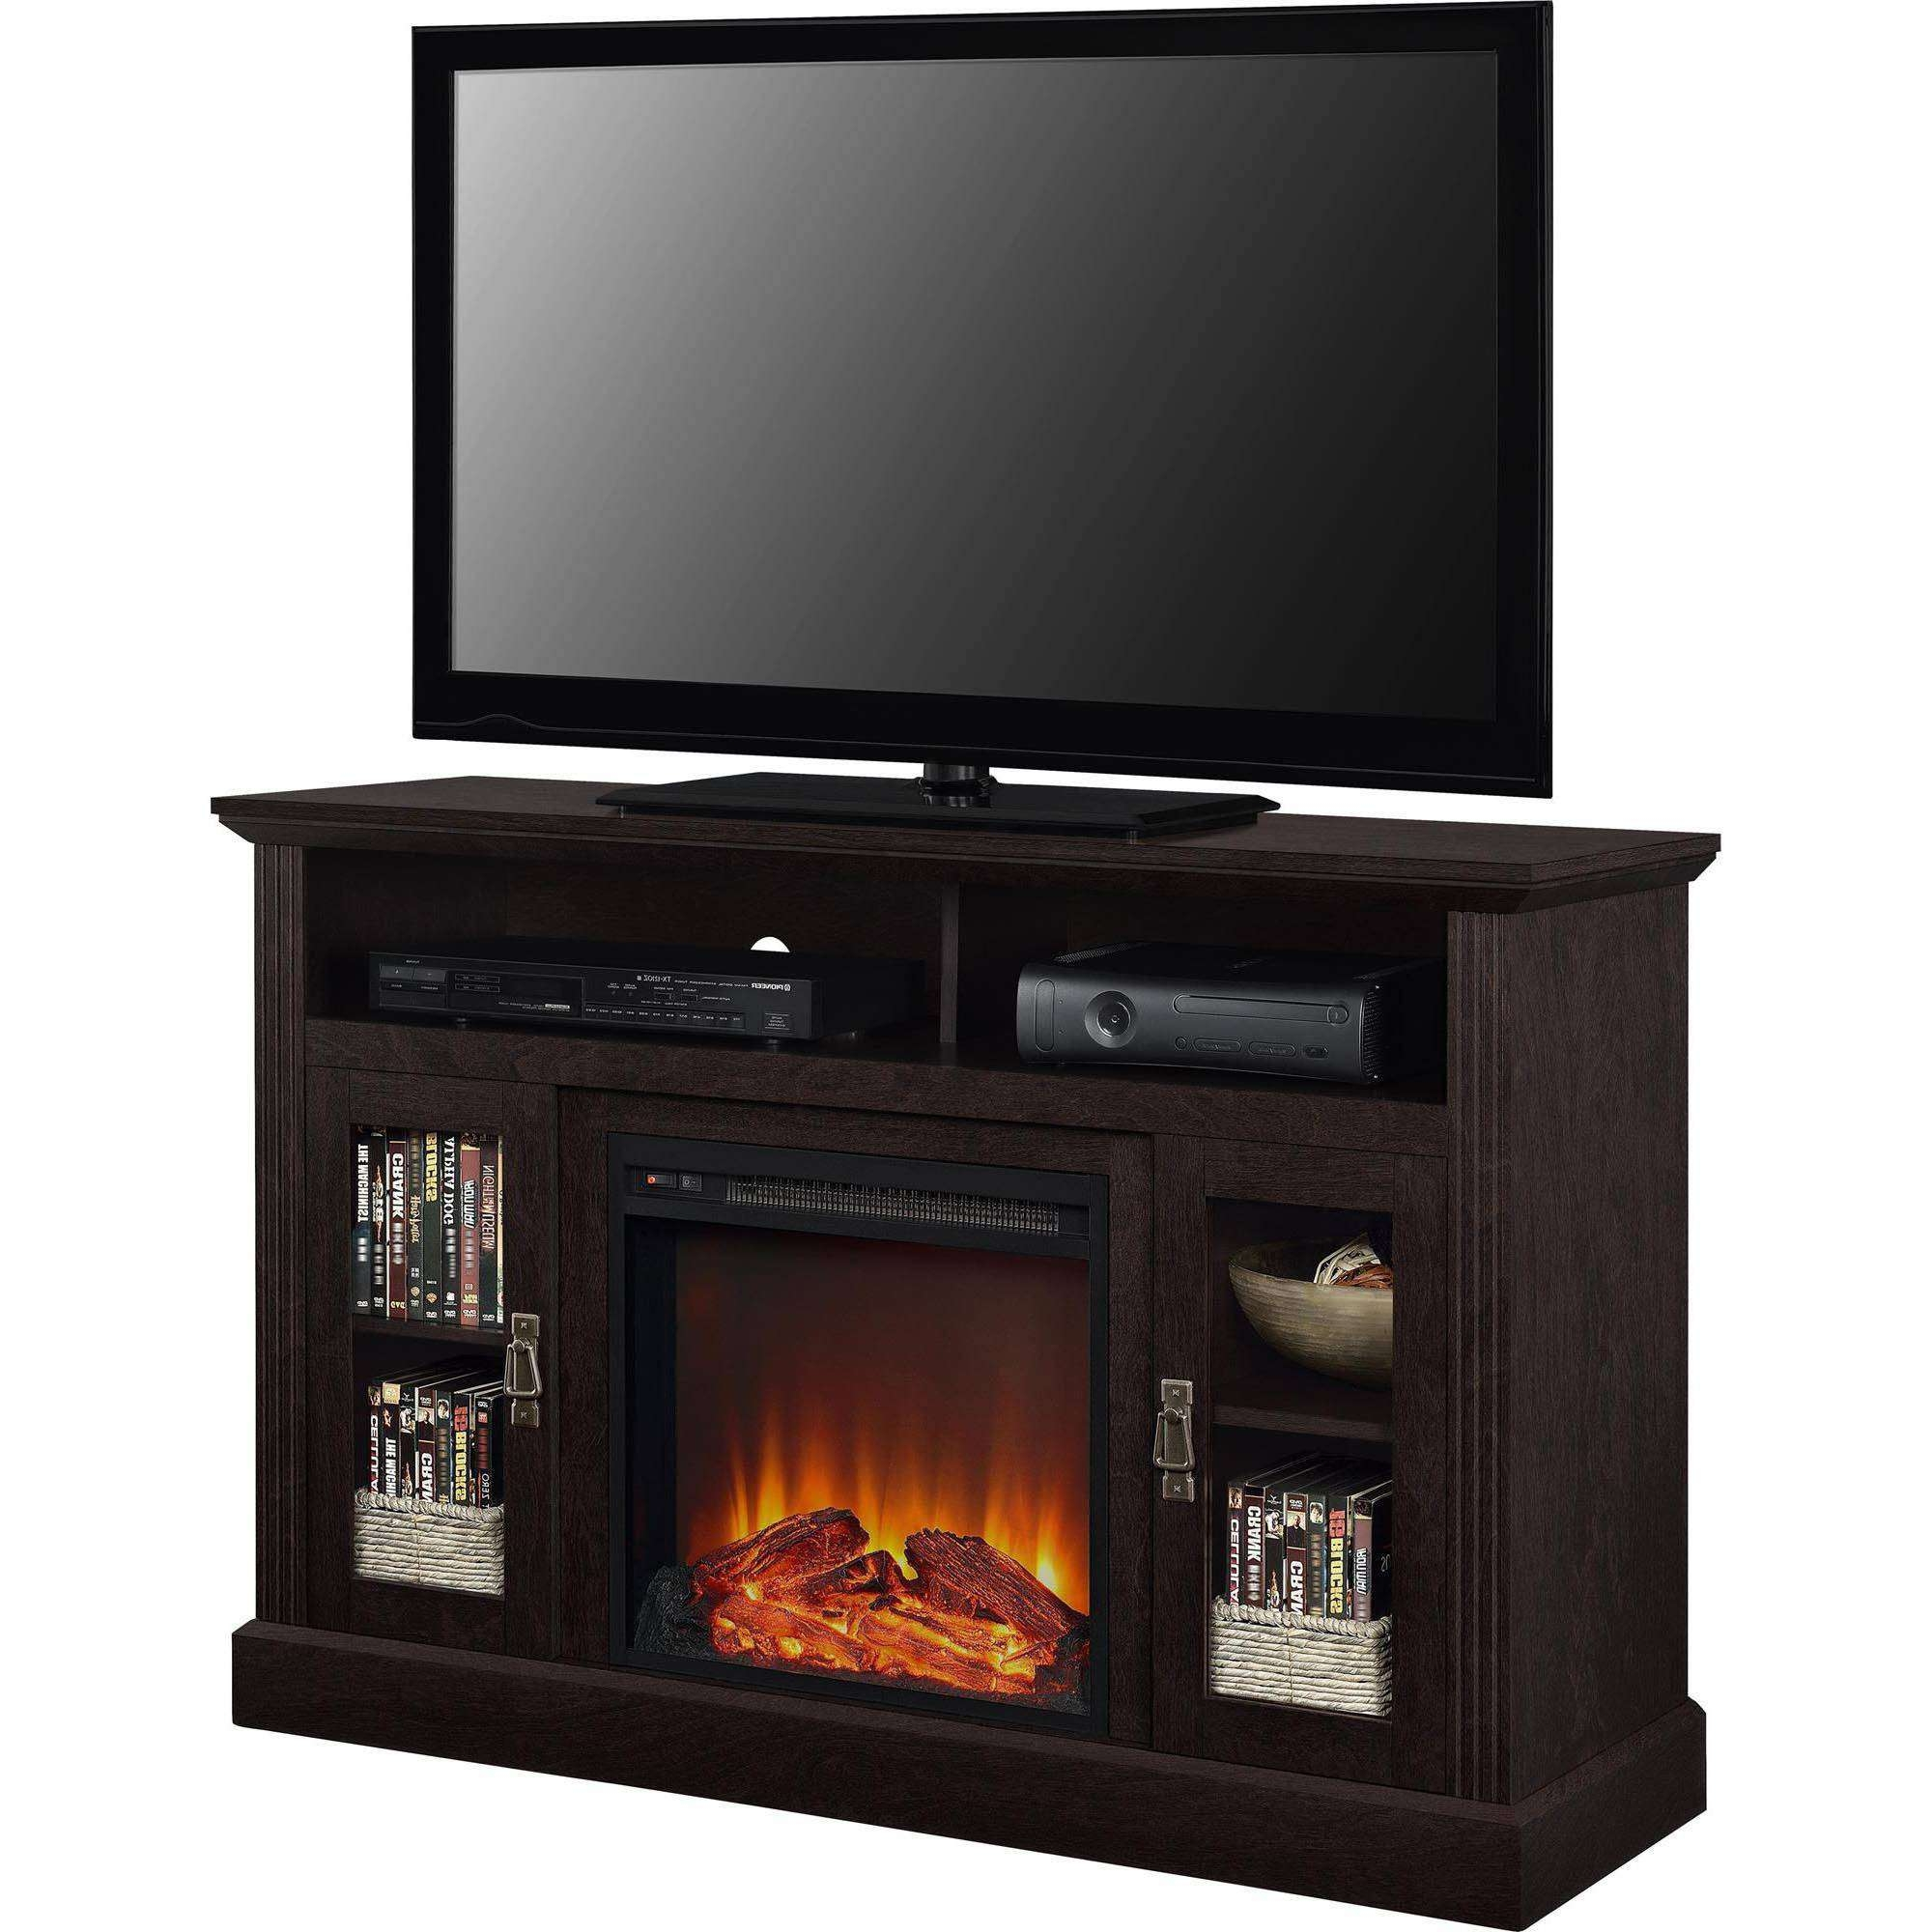 Fireplace Tv Stands – Walmart For 50 Inch Fireplace Tv Stands (View 4 of 15)